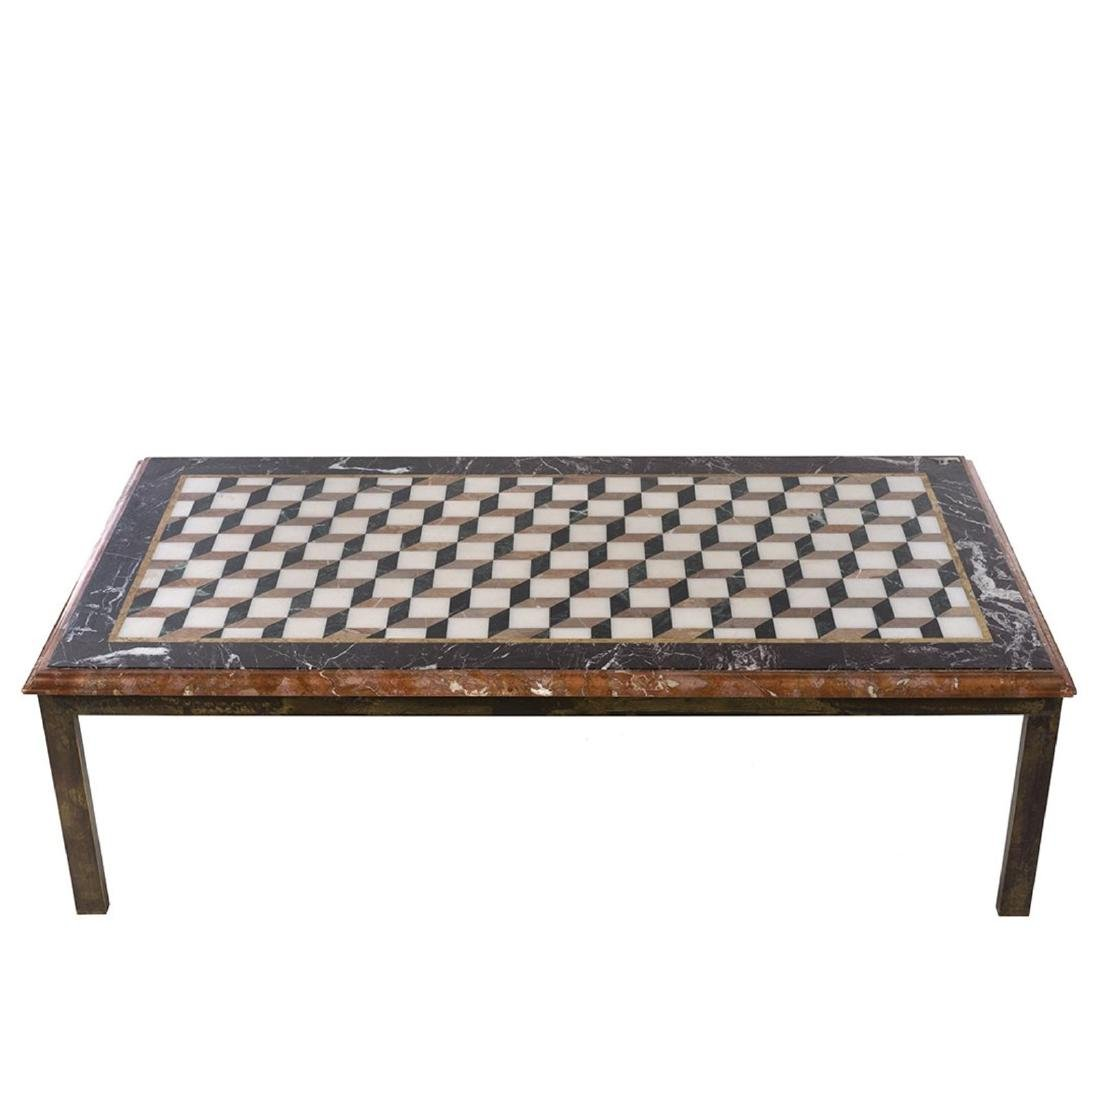 Marble and Brass Framed Coffee Table - 2